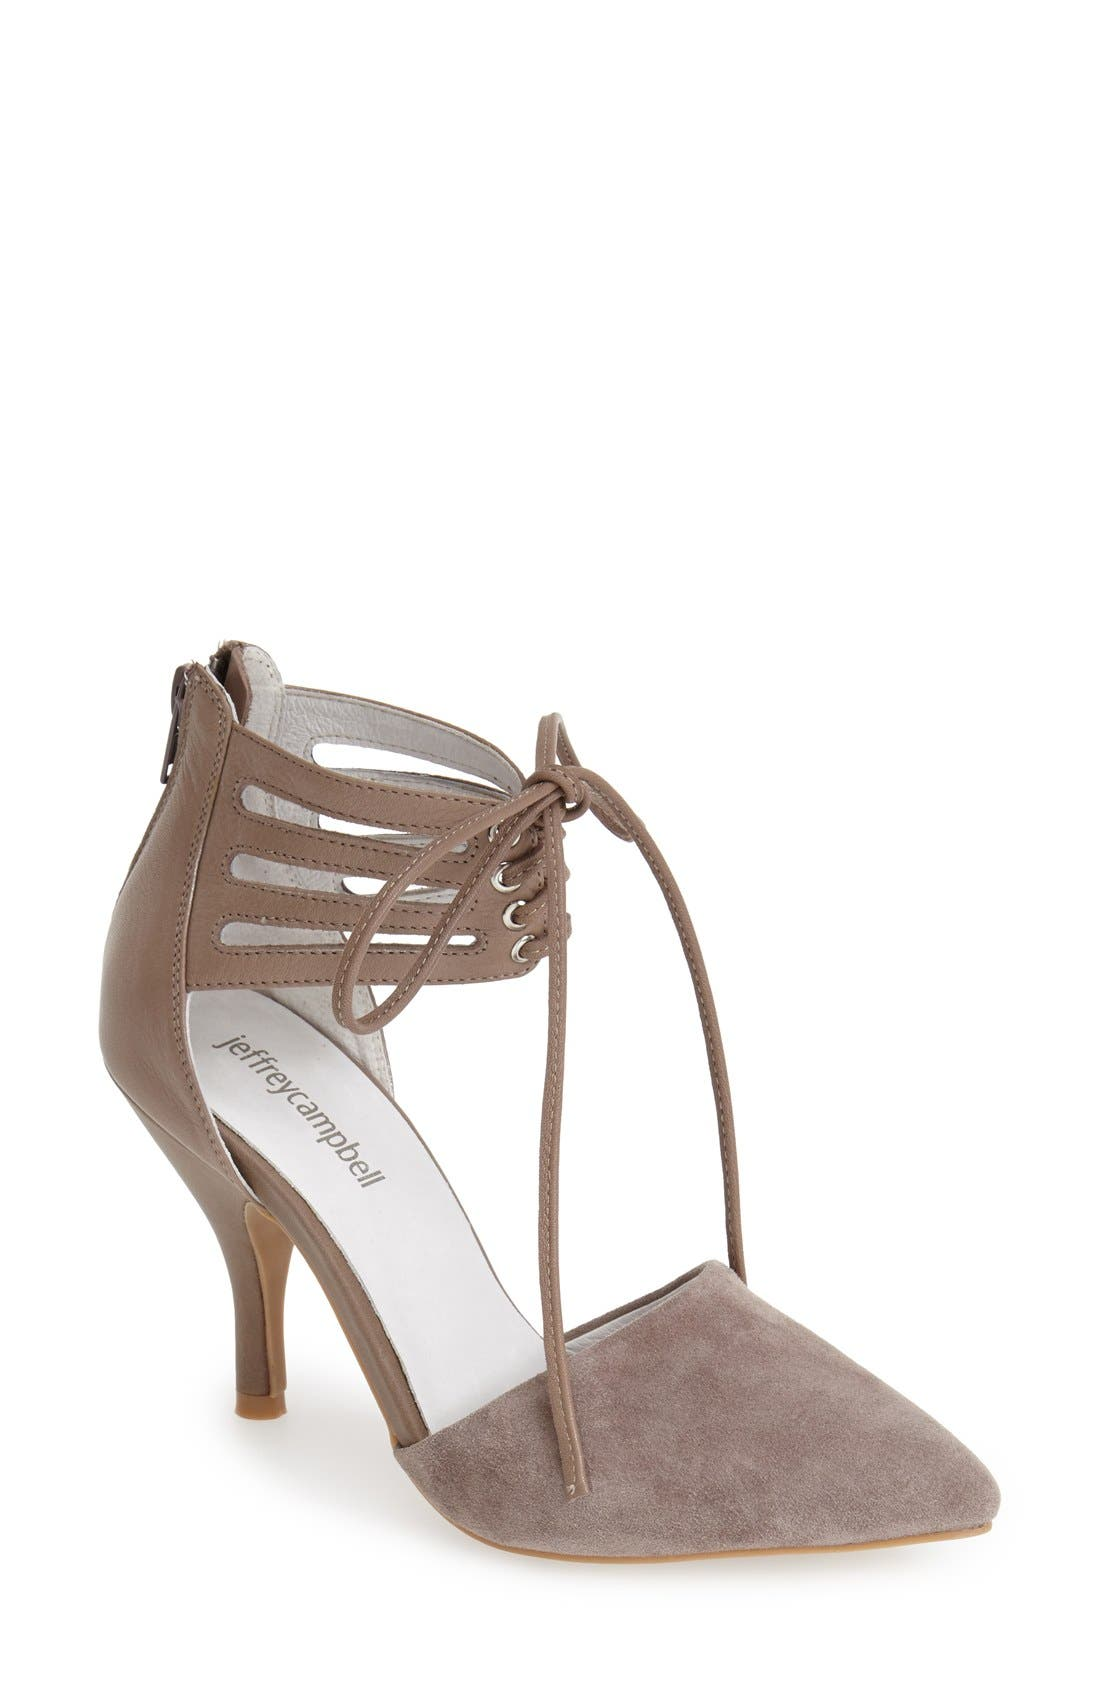 Alternate Image 1 Selected - Jeffrey Campbell 'Picabo' Lace-Up Pump (Women)